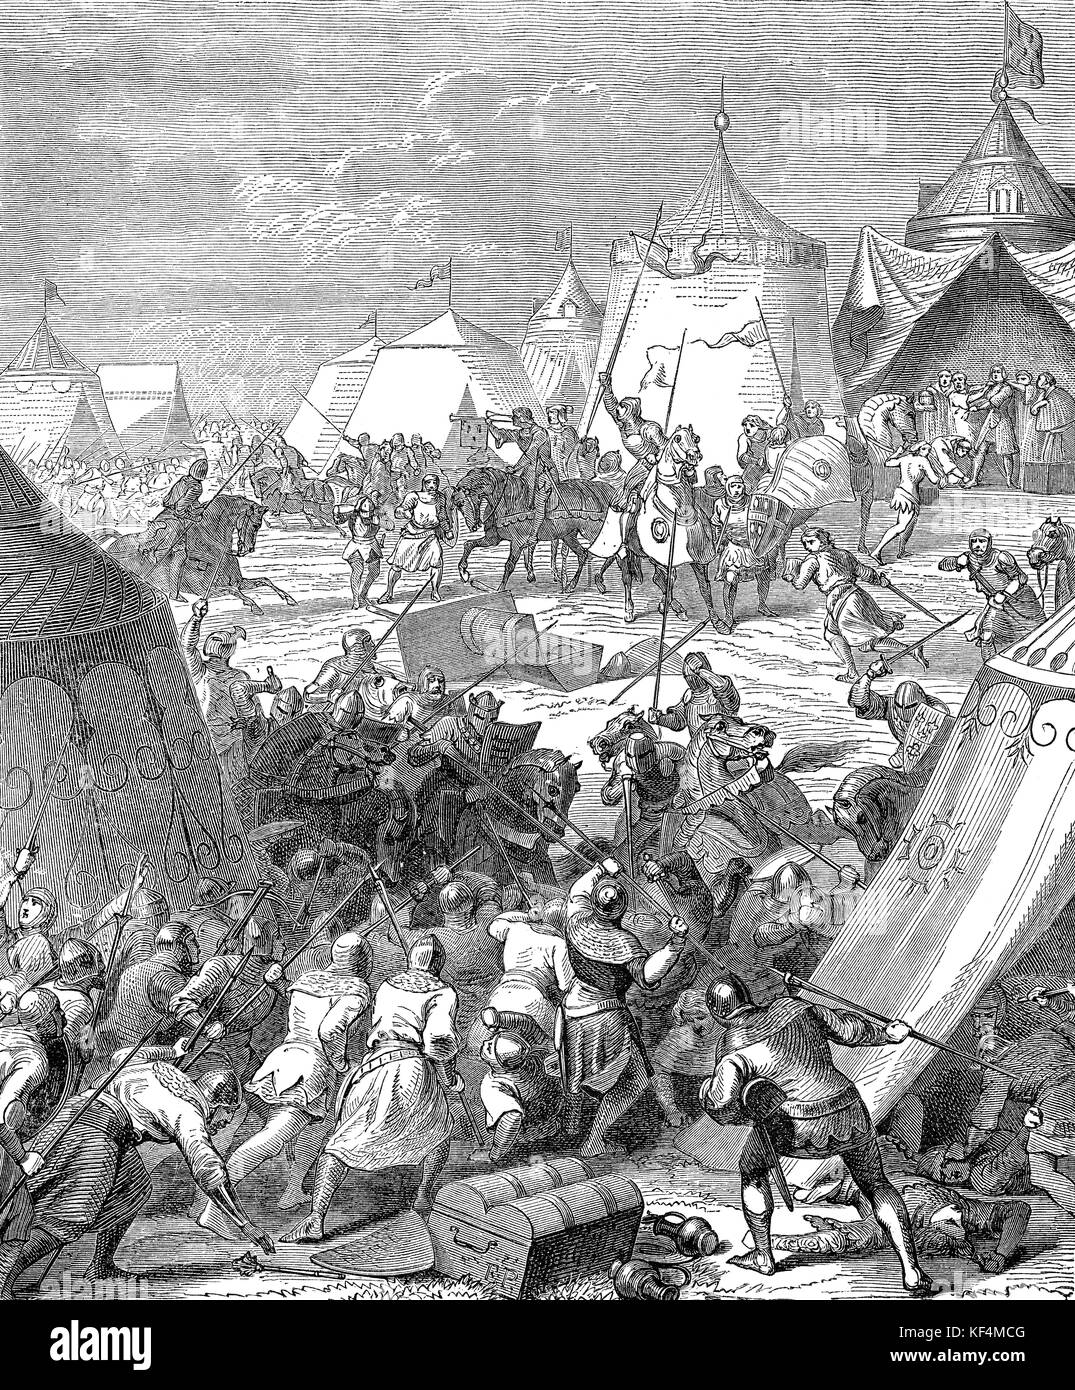 The Battle of Poitiers, 19 September 1356, Southern France, Hundred Years' War - Stock Image